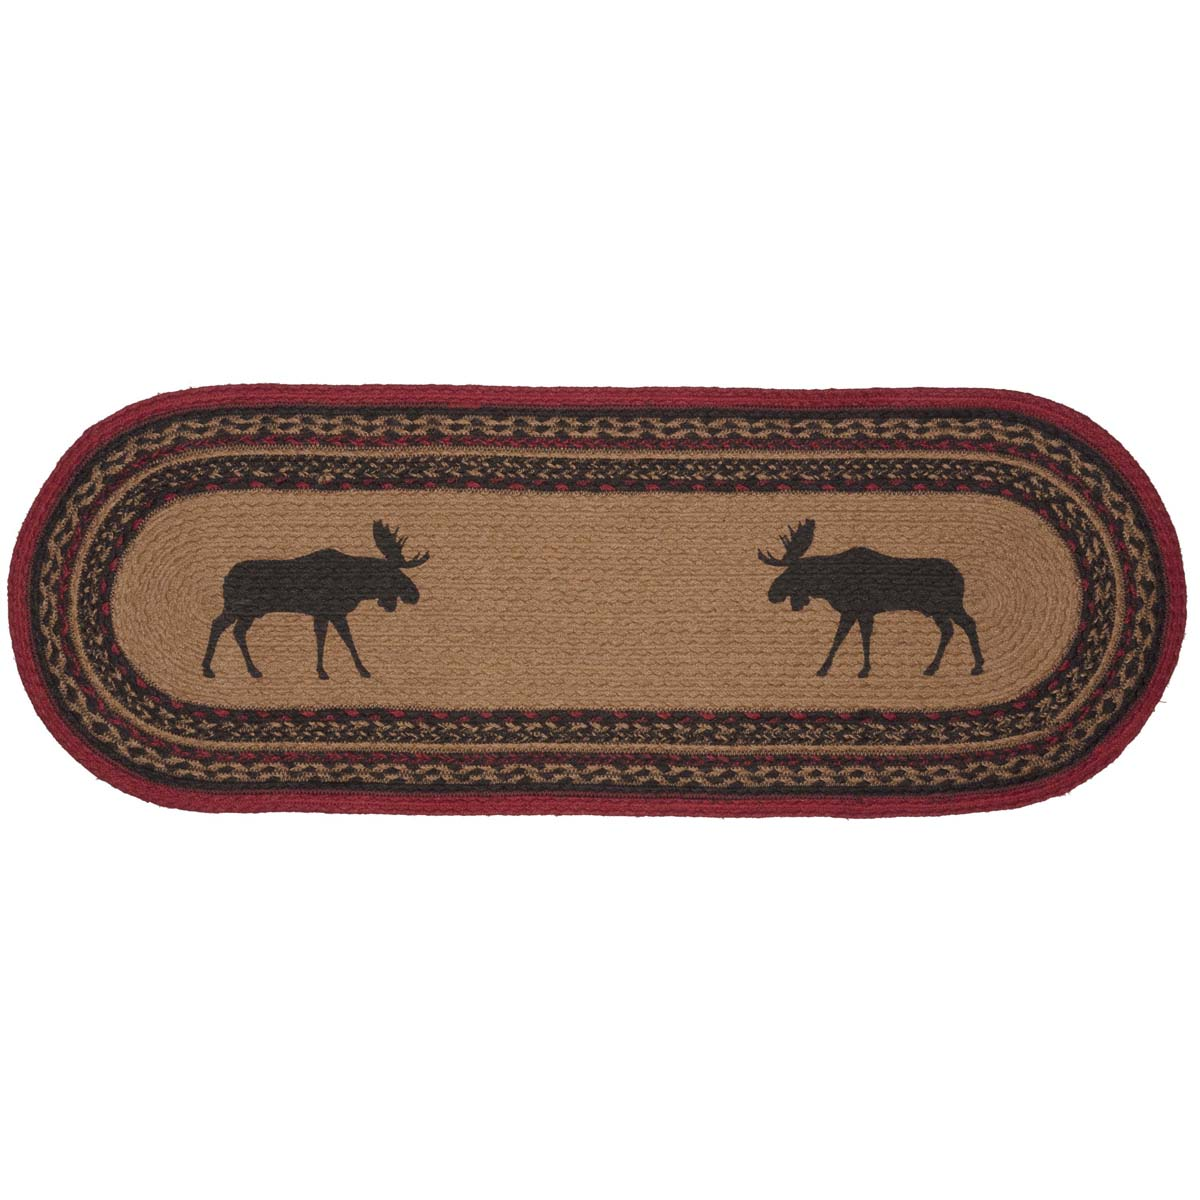 Cumberland Stenciled Moose Jute Runner Oval 13x36 - Woodrol